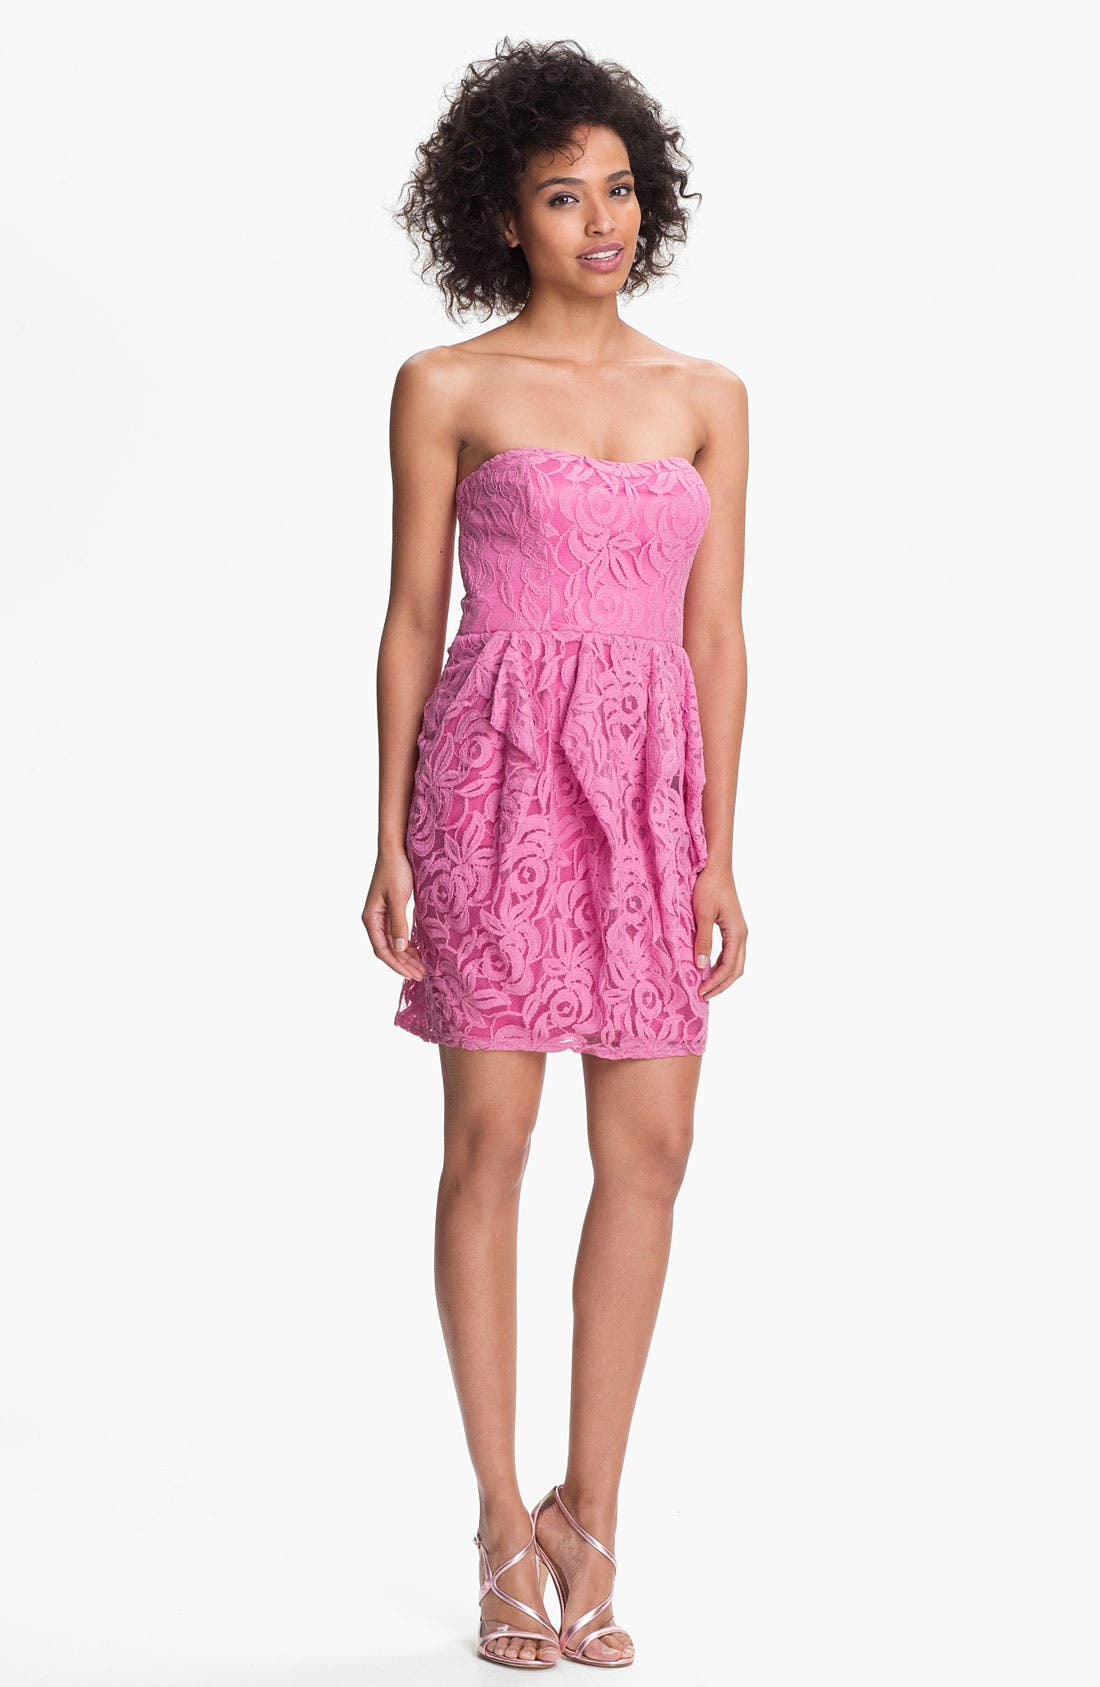 Main Image - Jessica Simpson Strapless Ruffled Lace Dress